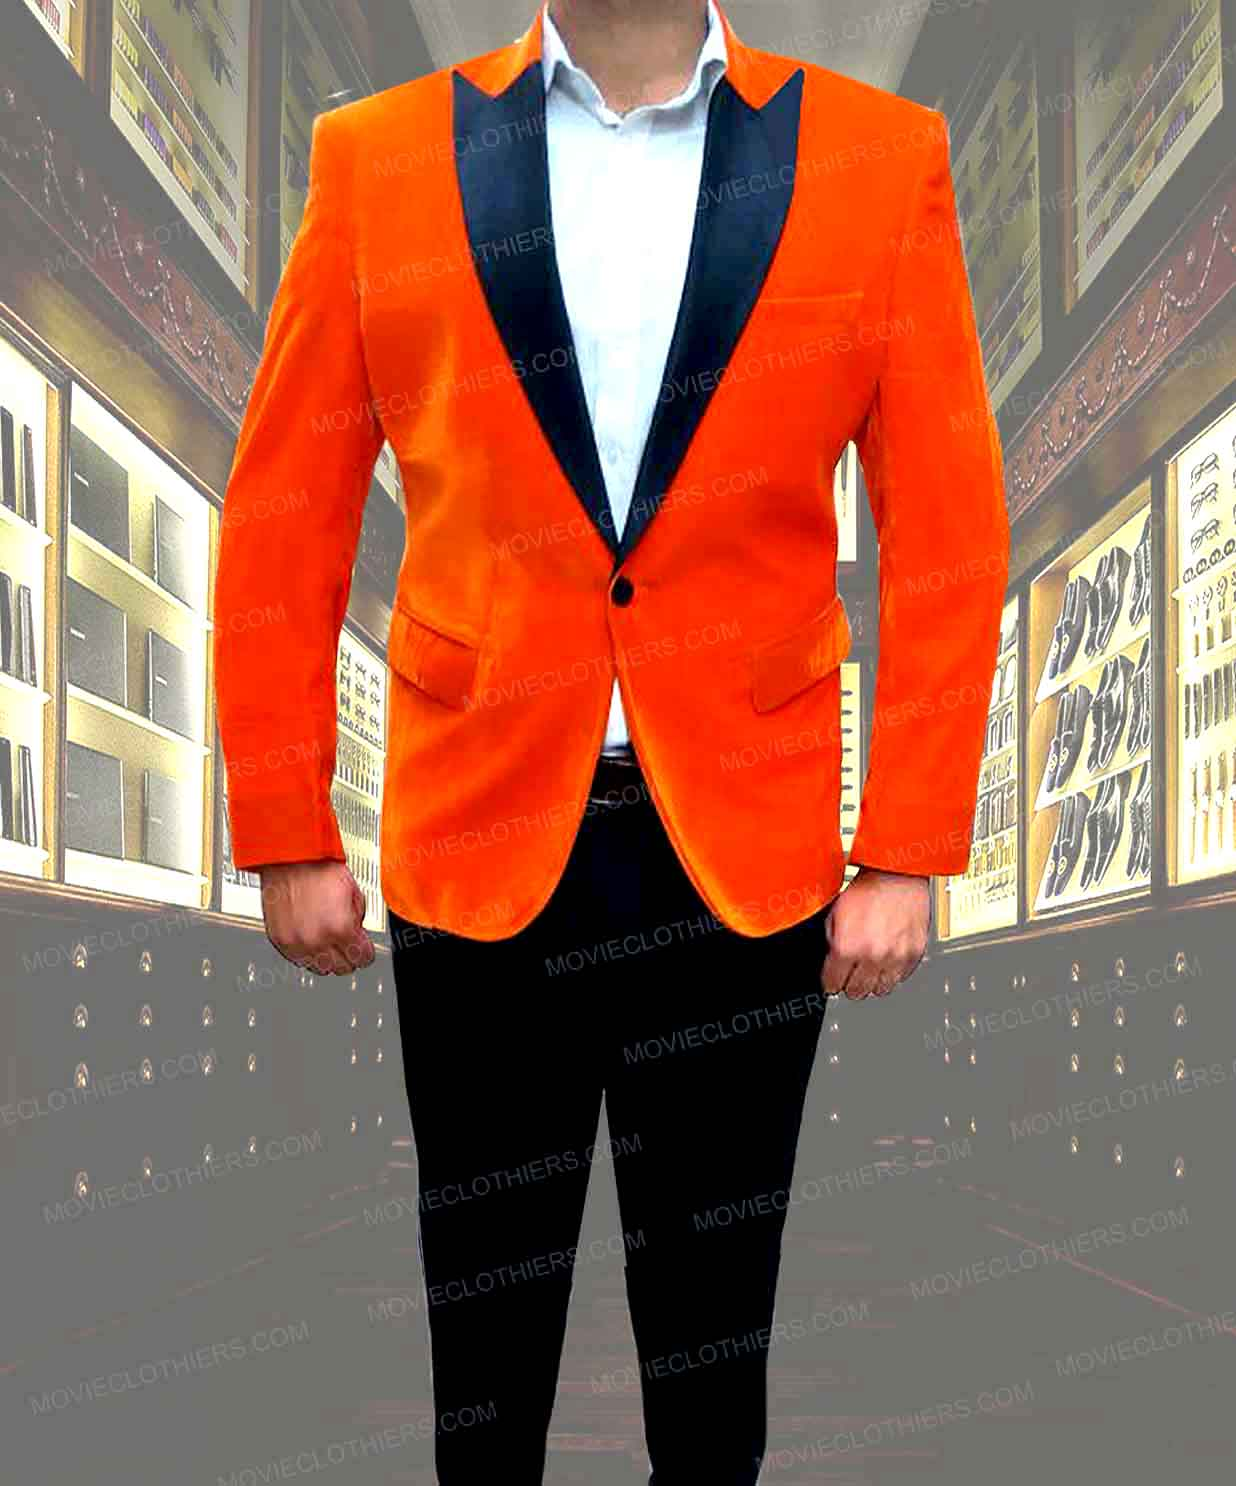 kinsgsman-eggsy-orange-jacket